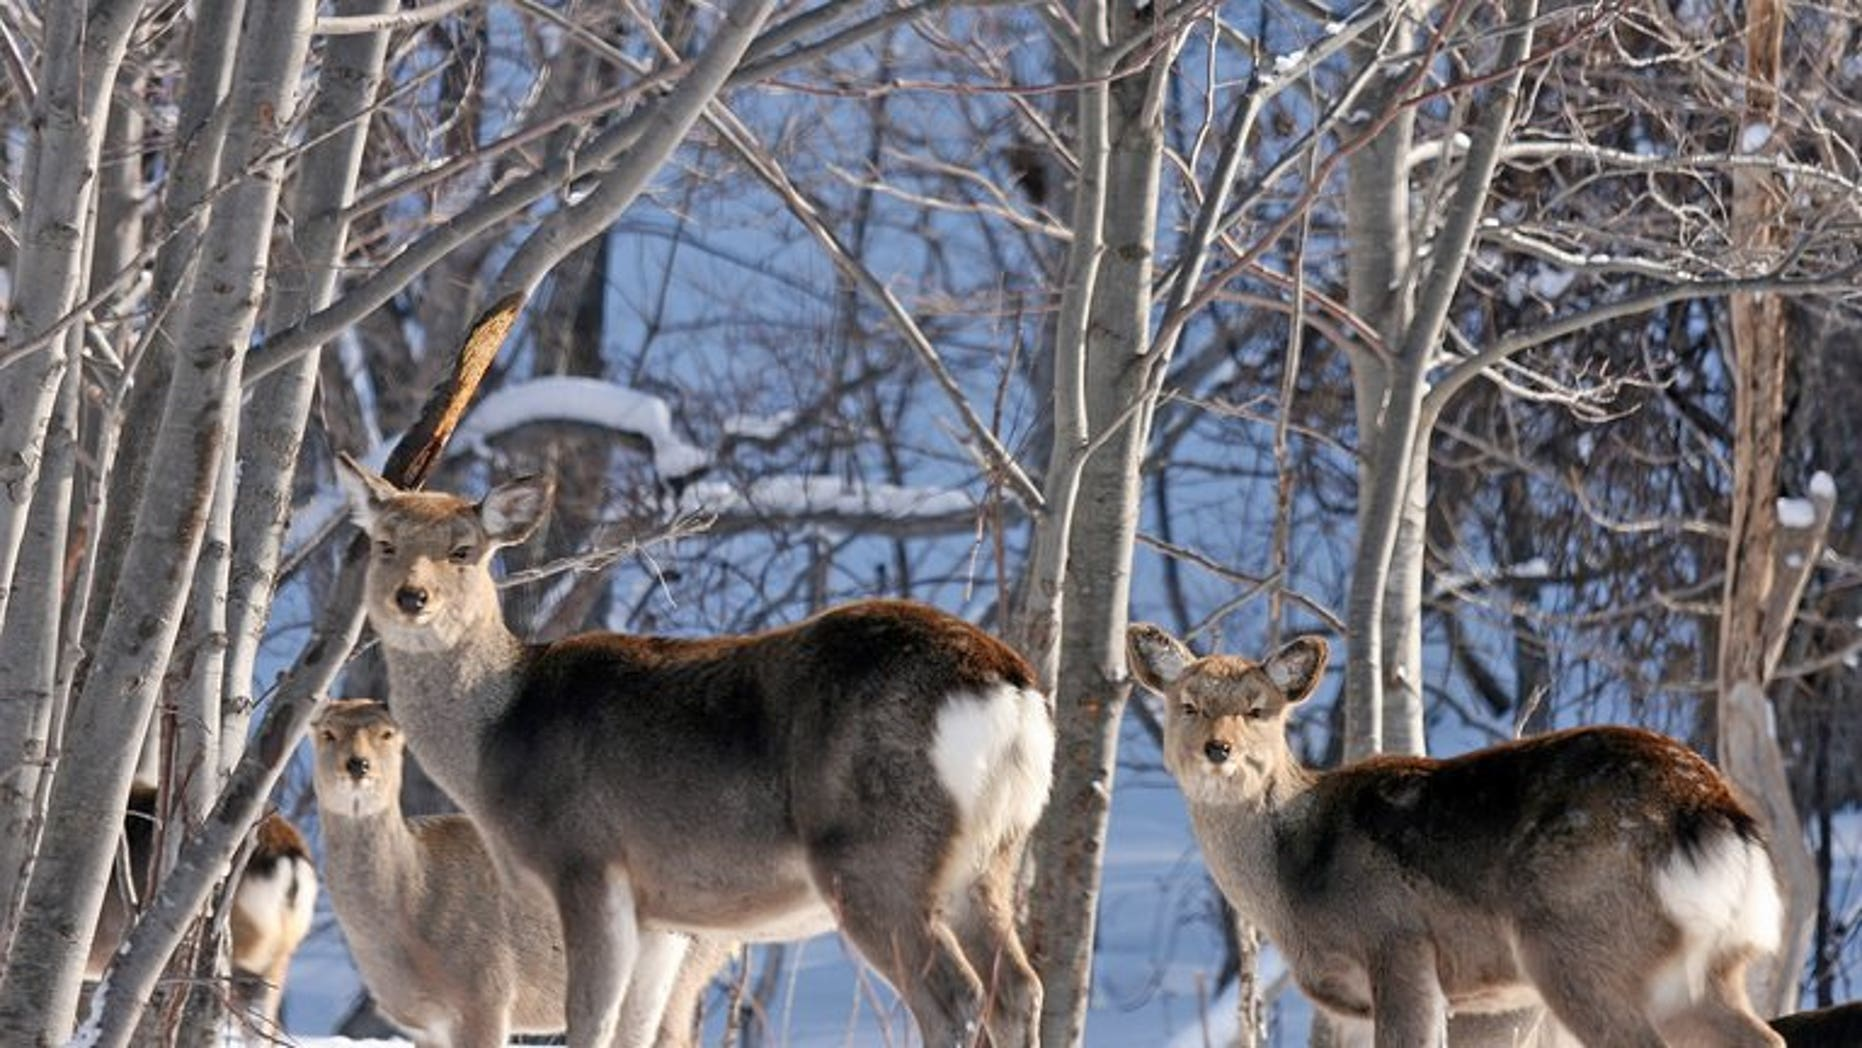 This file photo shows deer, pictured near Shari town in nothern Japan, on February 10, 2007. Transport operators in the north are sprinkling wolf urine near roads and broadcasting the roar of lions near train tracks in a bid to keep deer away and reduce accidents, according to officials.